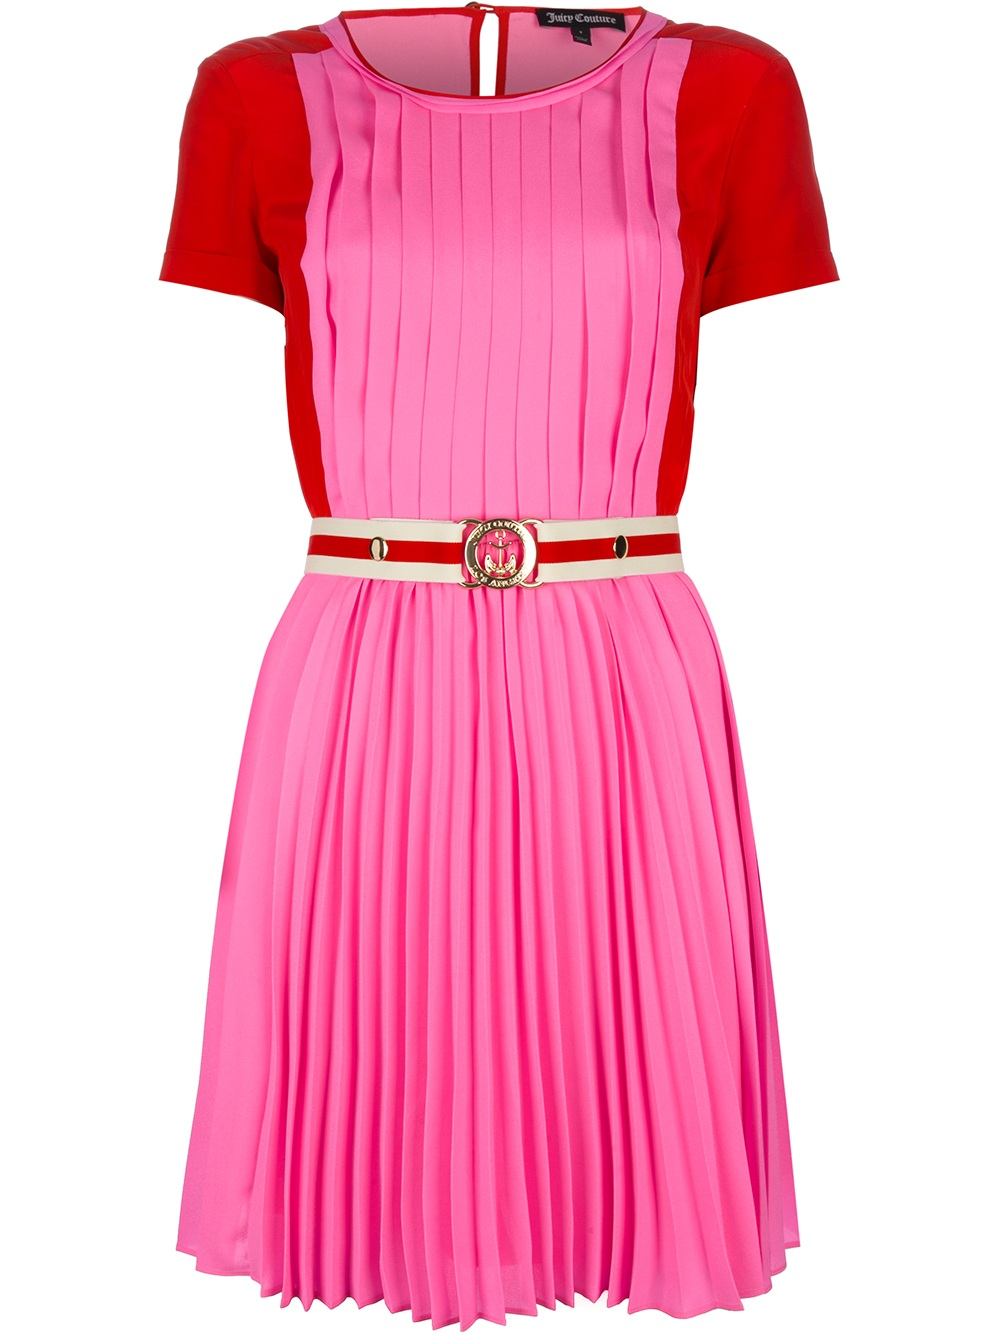 818cba0118 Lyst - Juicy Couture Colour Block Dress in Pink